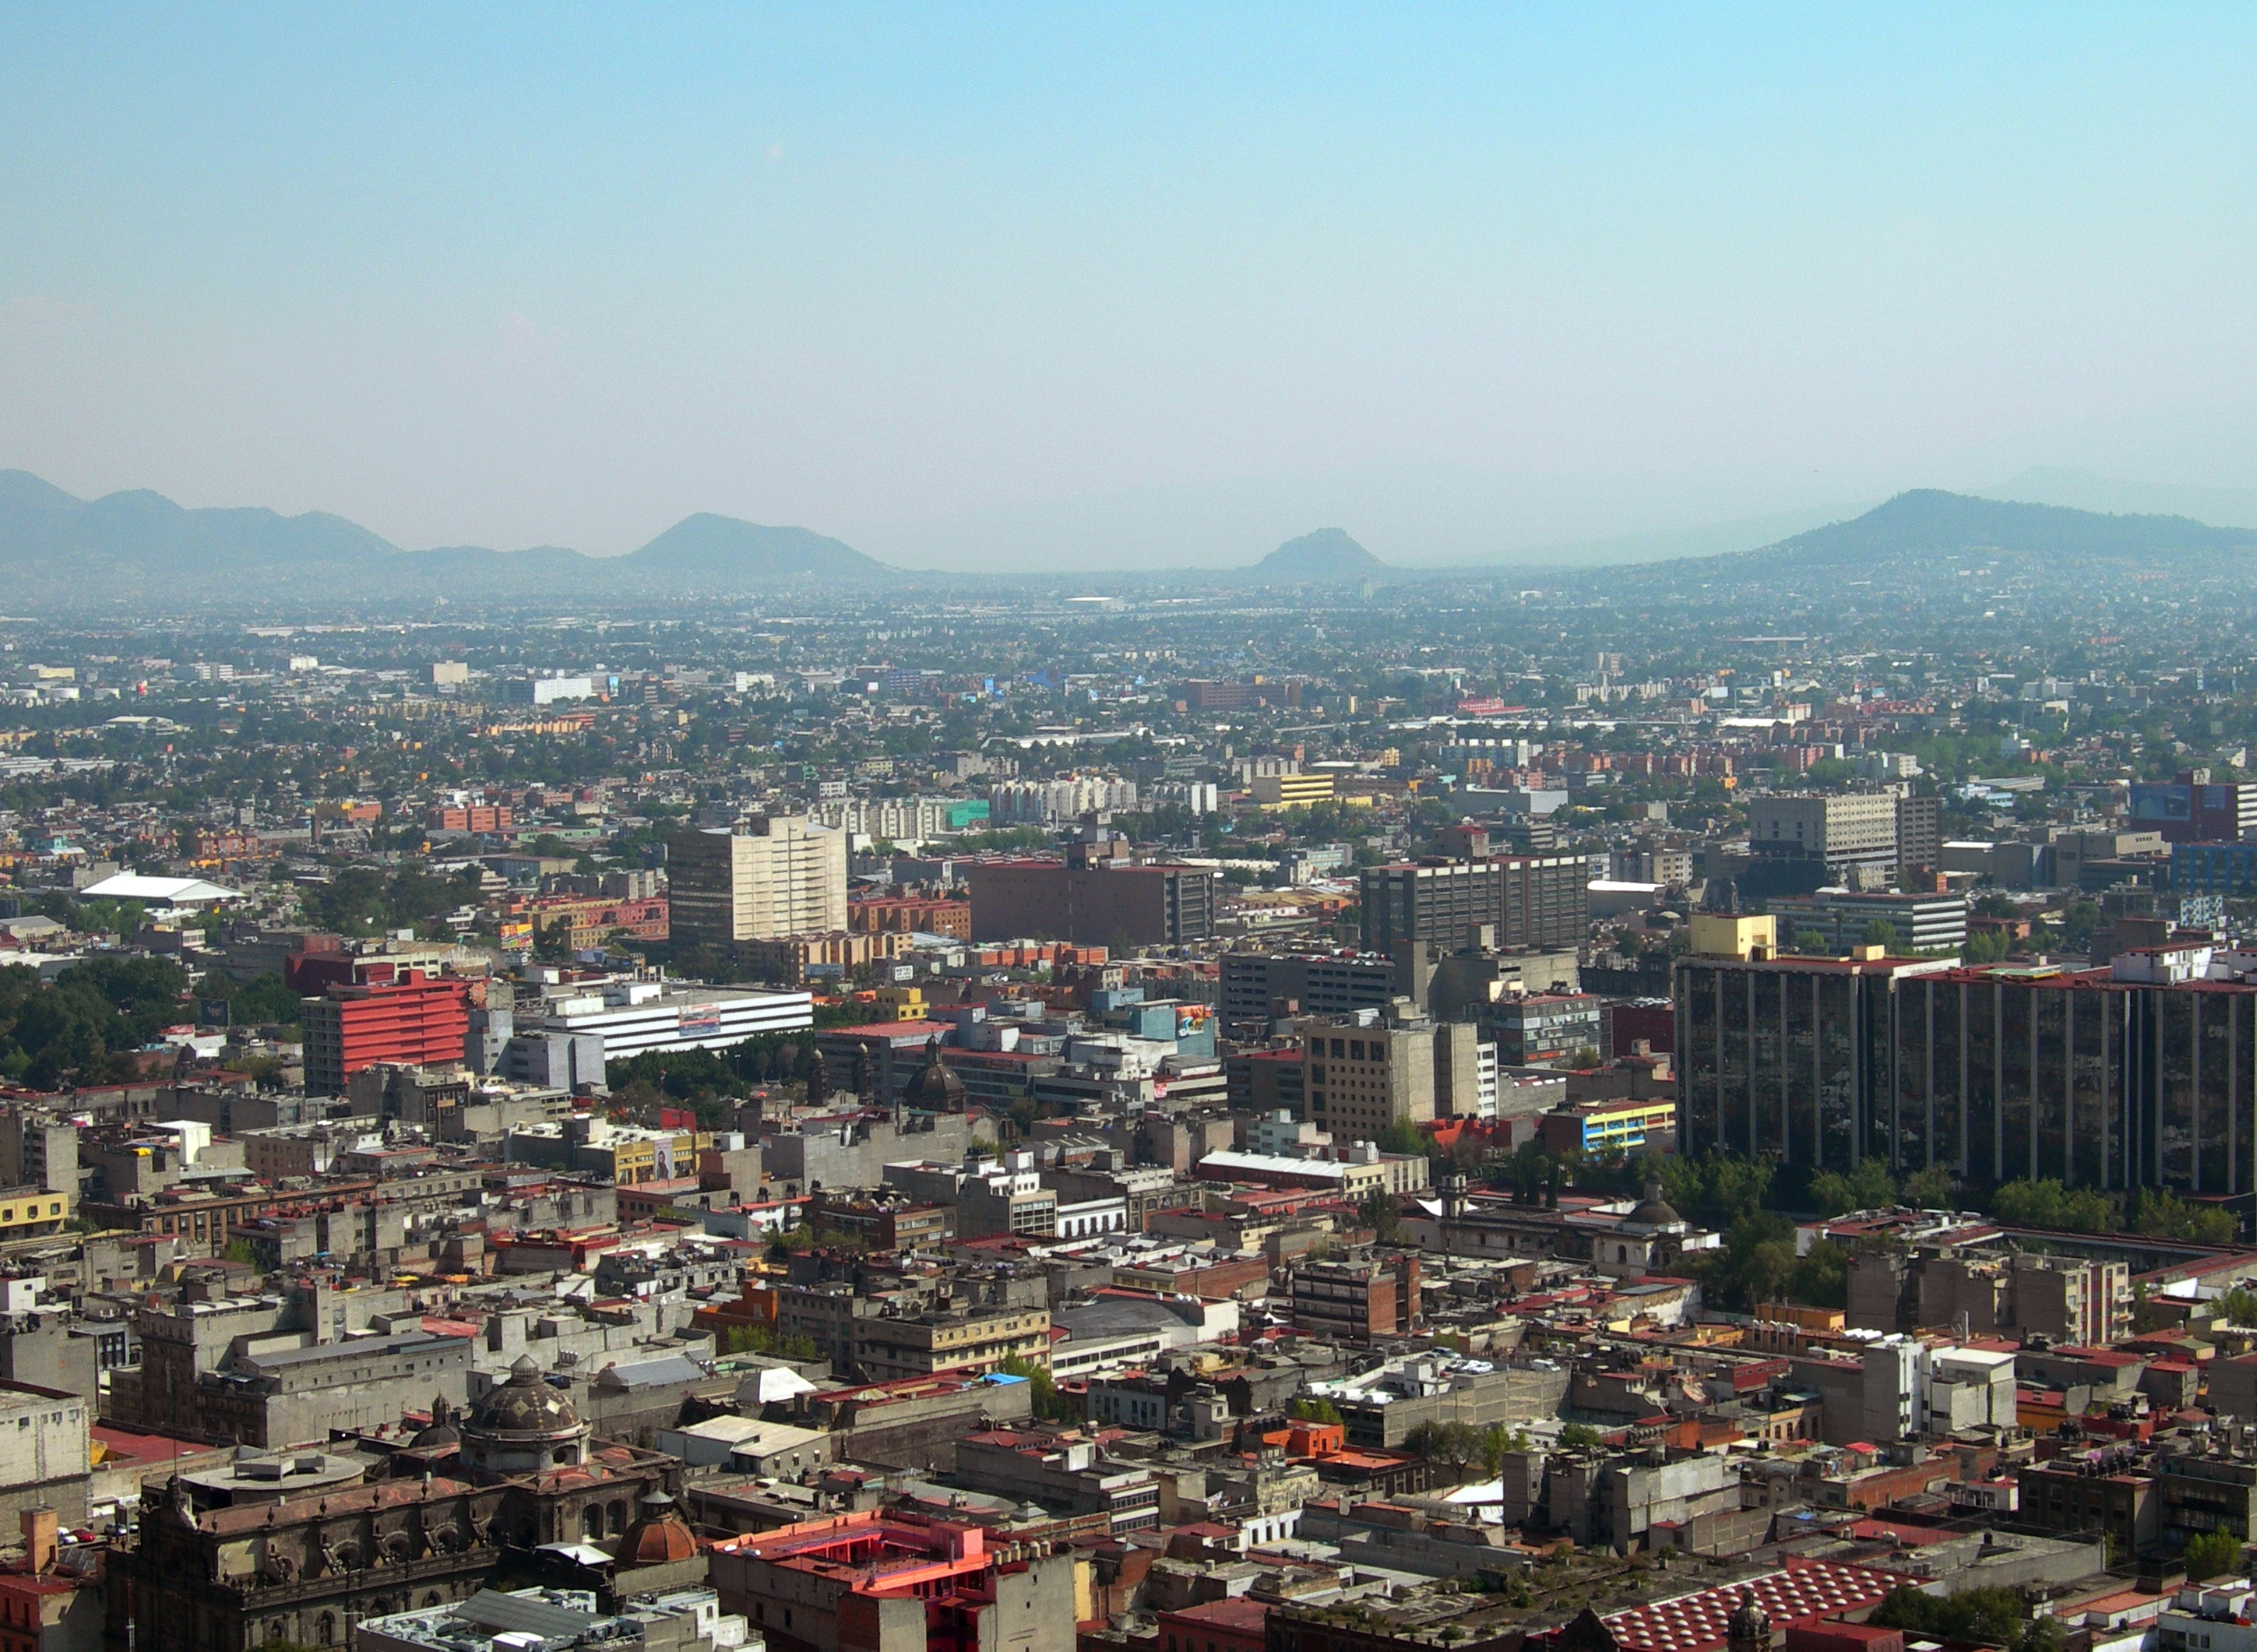 FIGURE 26. The Hill of the Star (at the far right edge of the photo) as seen from the top of the Torre Latinoamericana in downtown Mexico City, looking to the south-southeast. Photo by Byron Hamann.